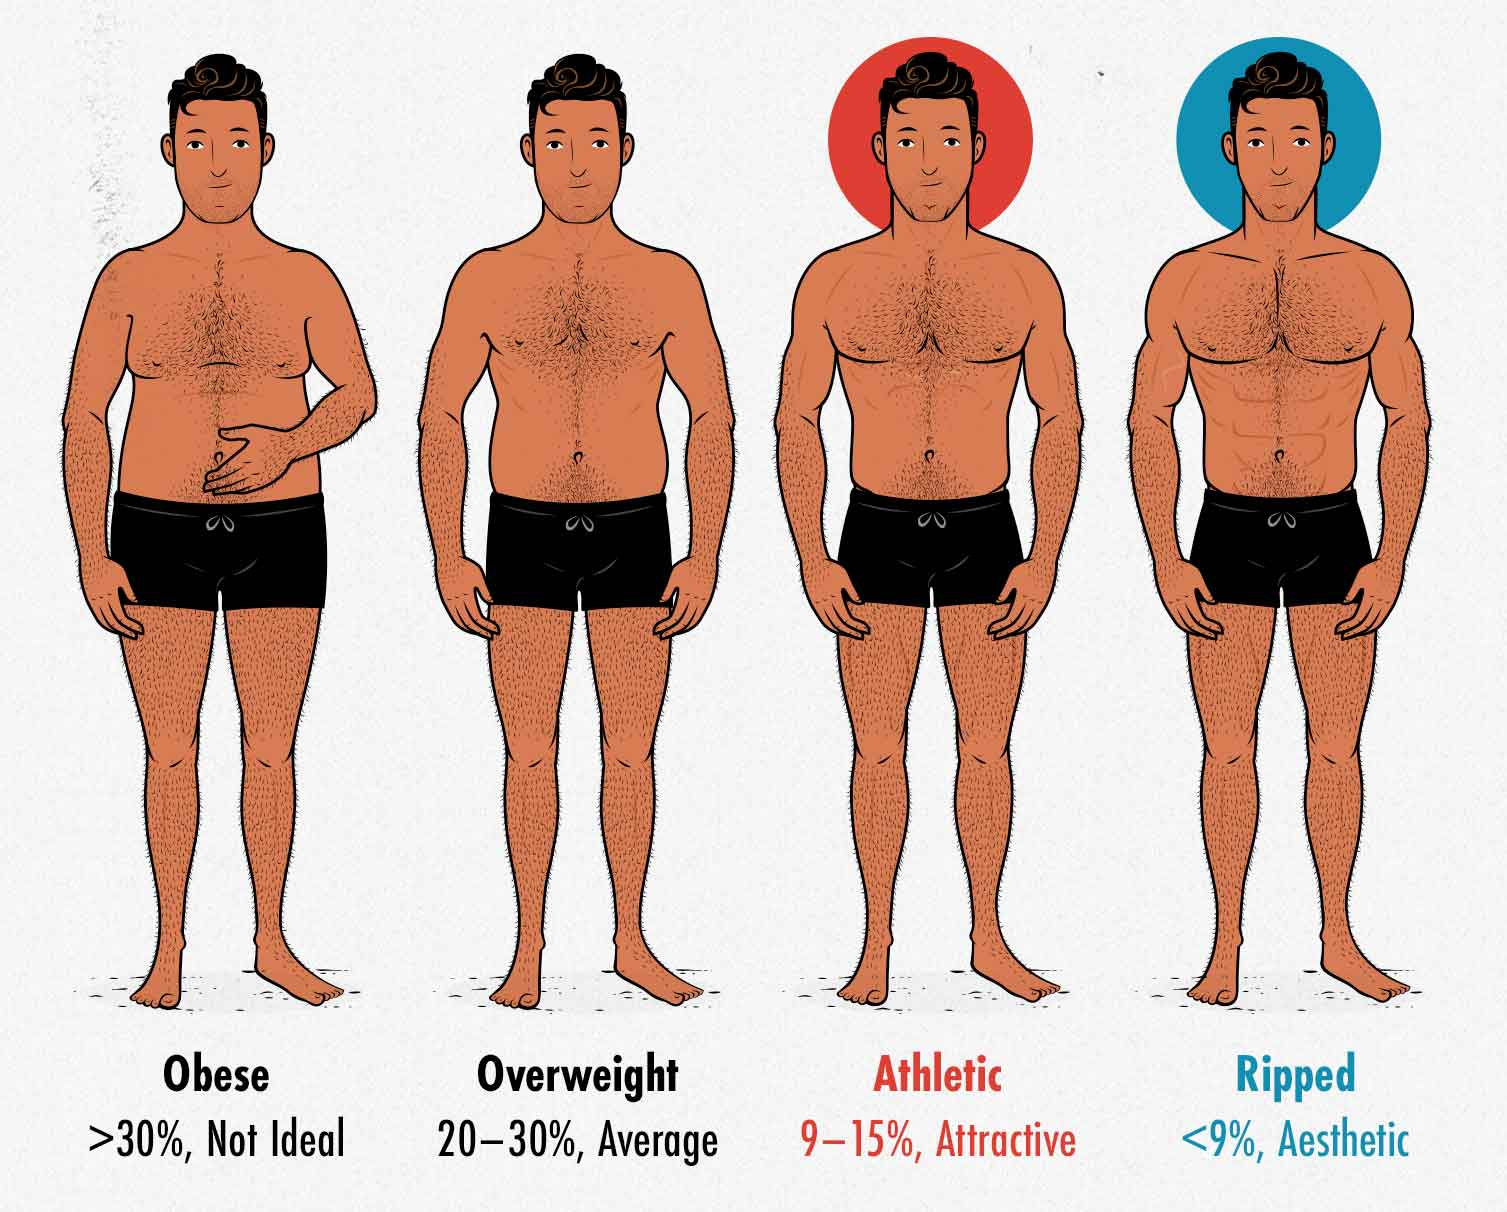 Diagram showing the most attractive and aesthetic male body-fat percentages.